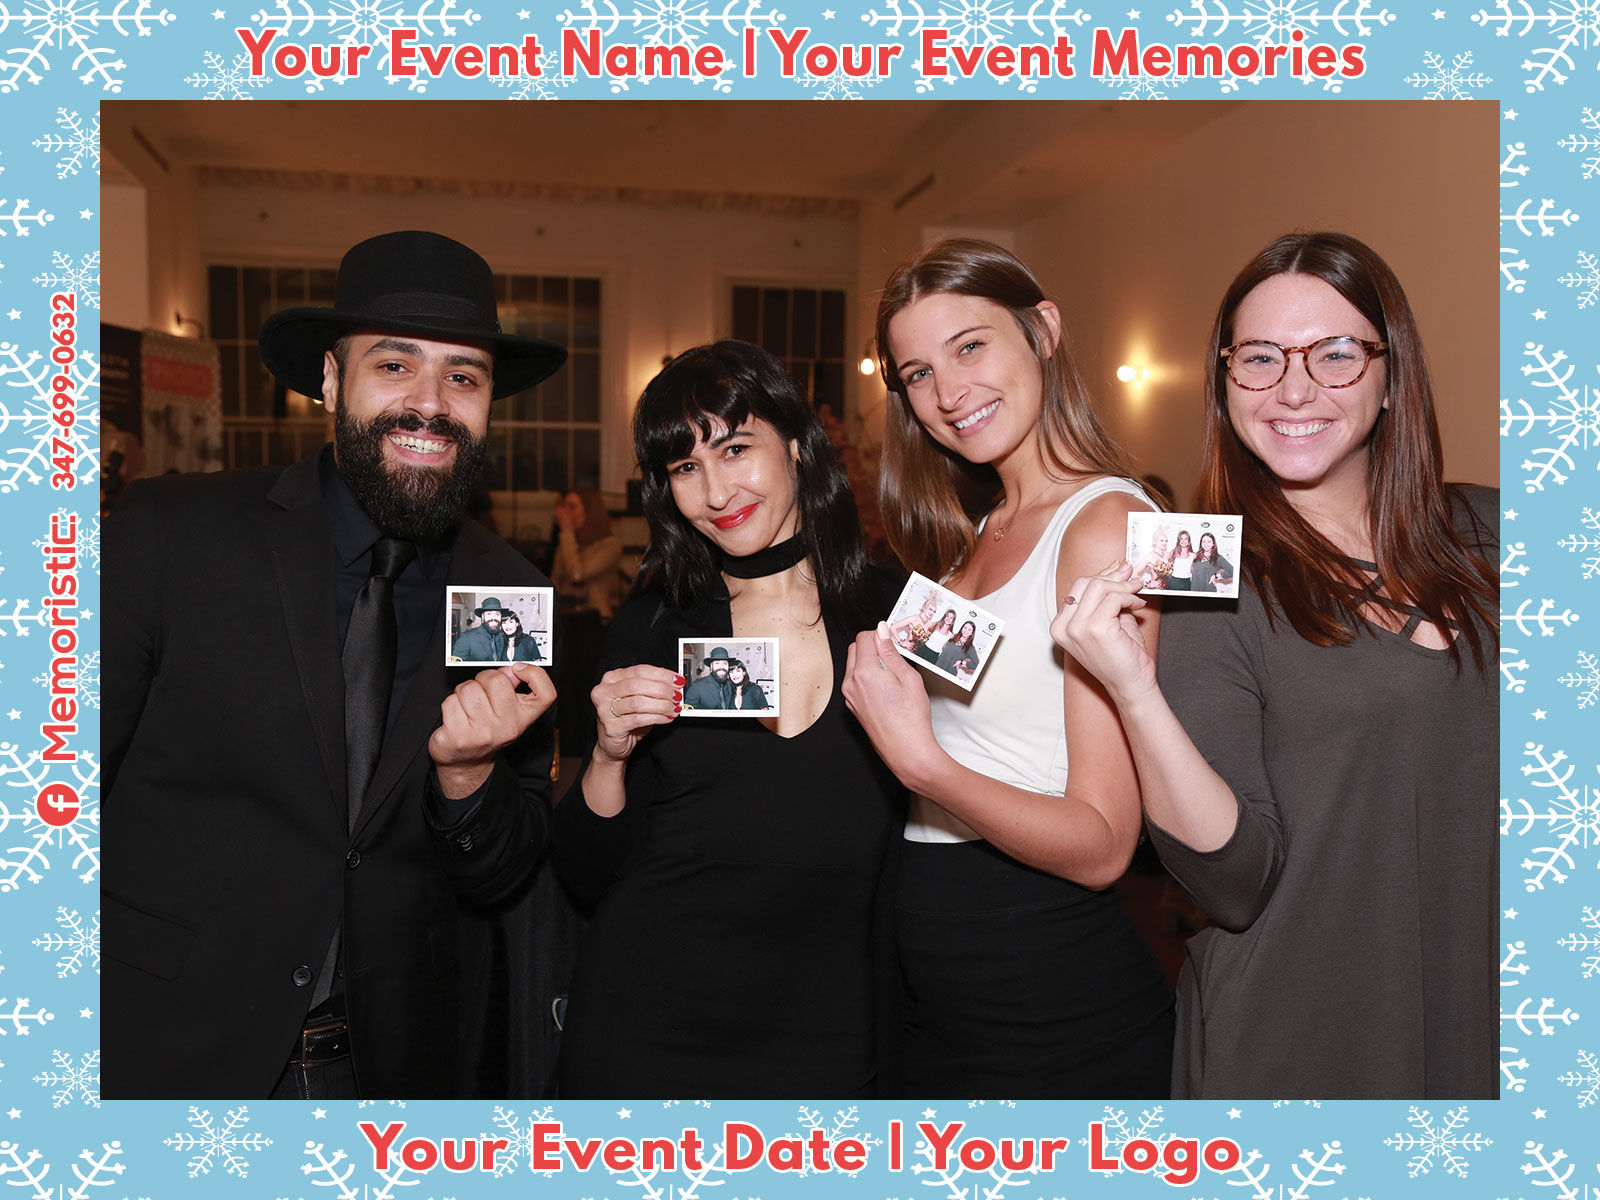 What's your event magnet frame?